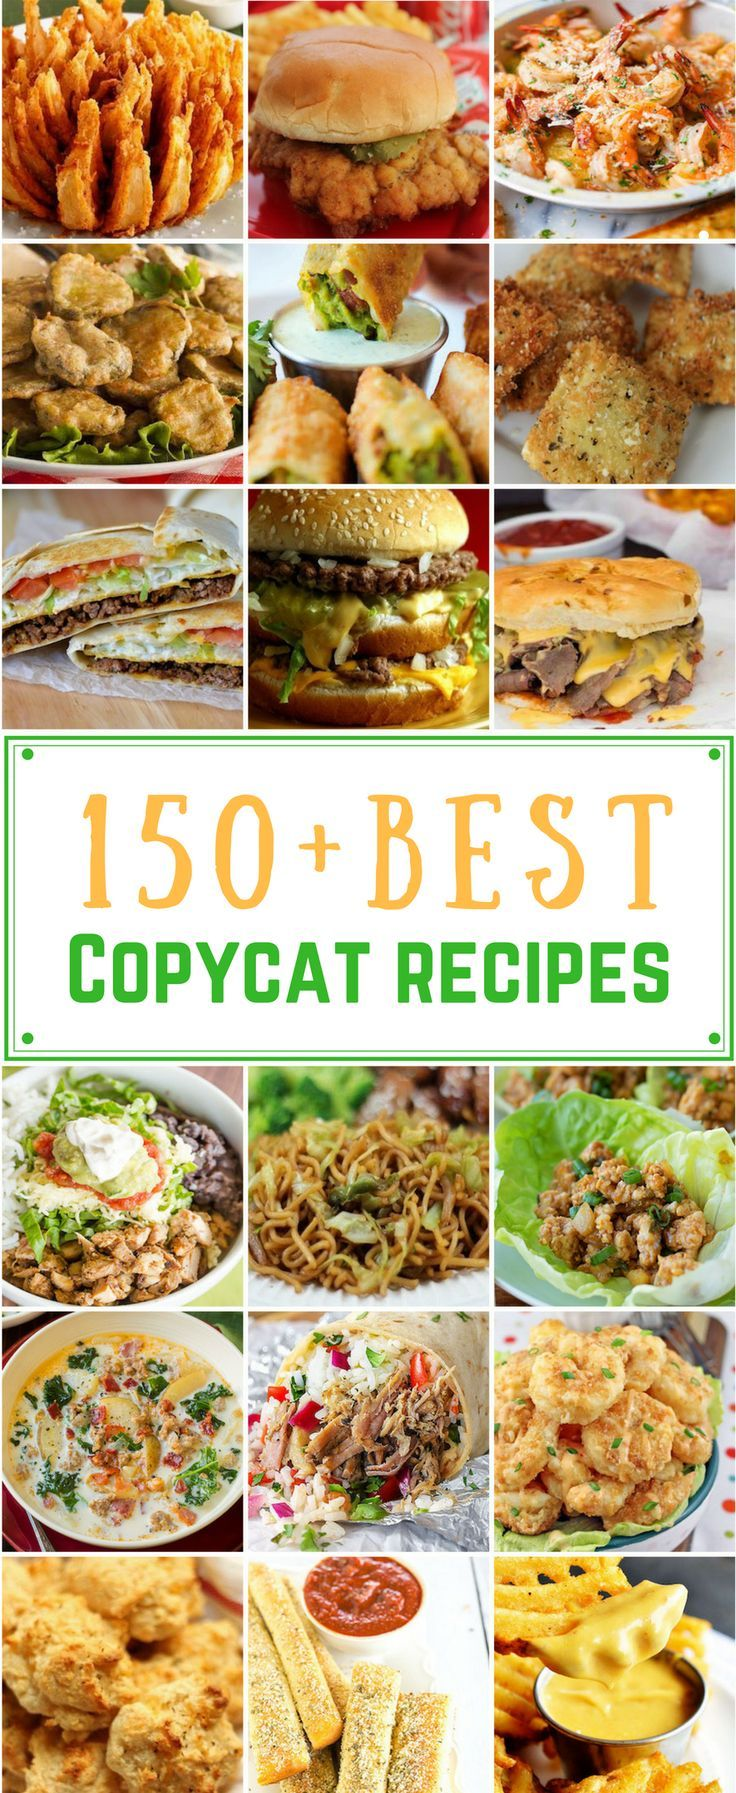 150 Best Copycat Recipes